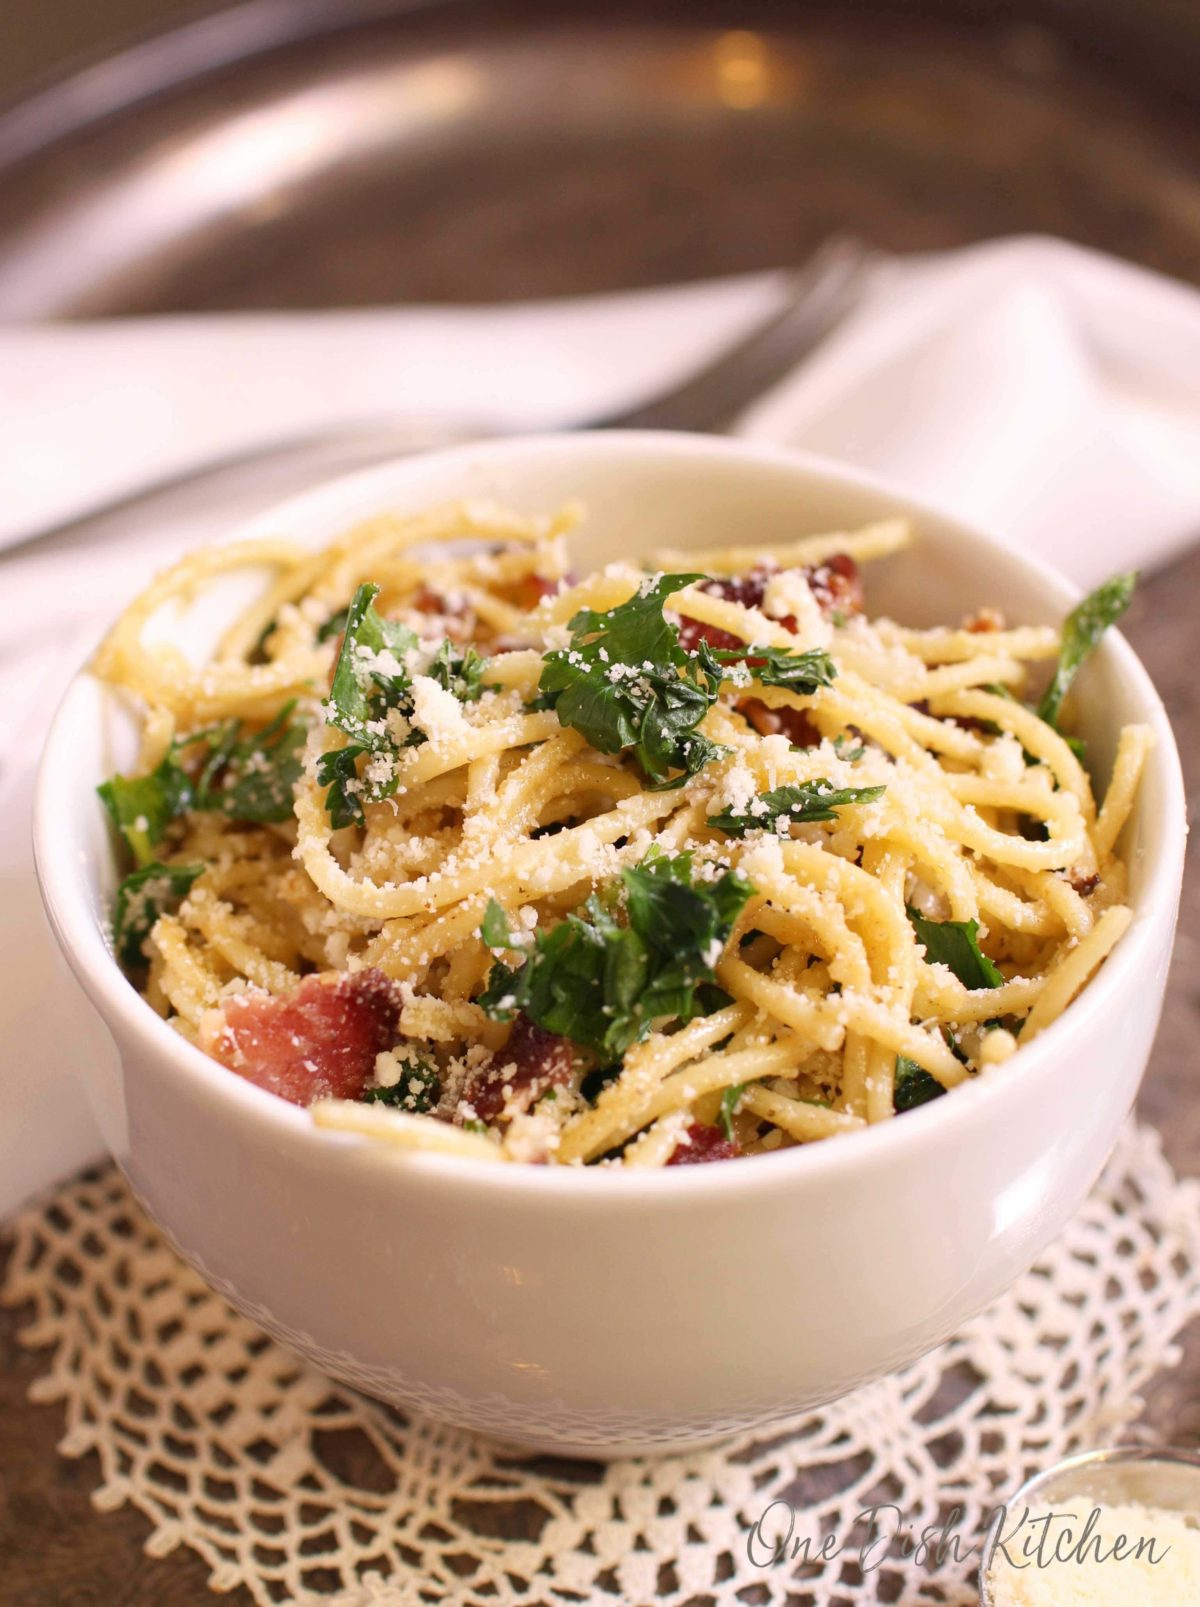 A bowl of pasta carbonara topped with parmesan cheese and parsley on a metal tray.